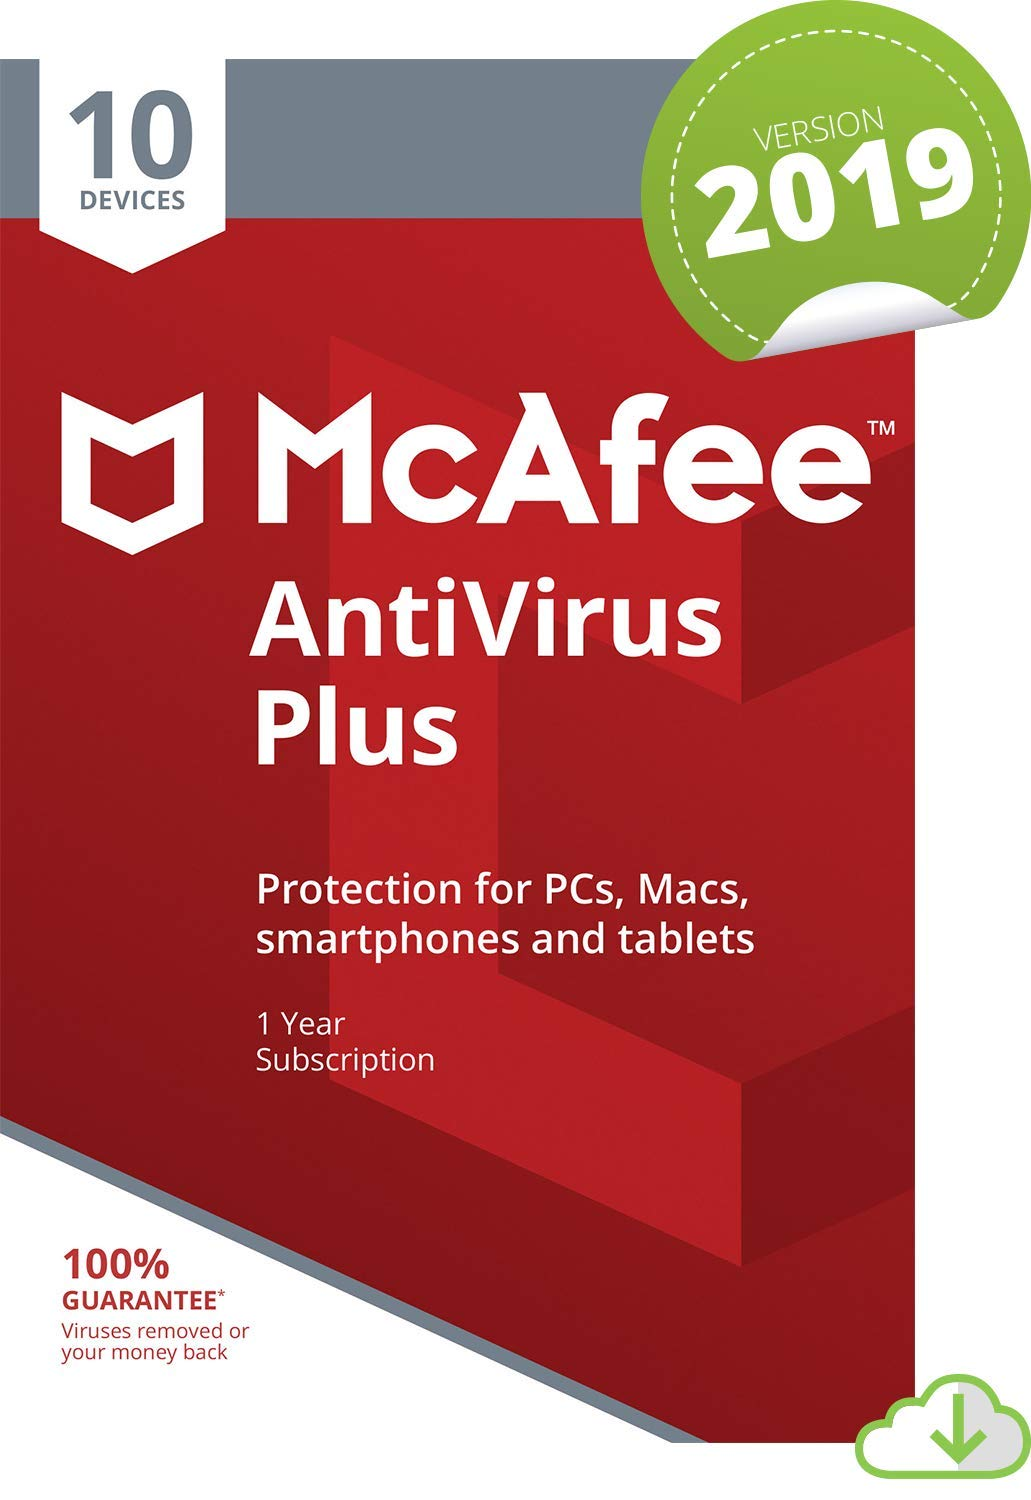 Best Android Antivirus 2020.Mcafee Antivirus Plus 2020 10 Devices 1 Year Pc Mac Android Smartphones Download Code